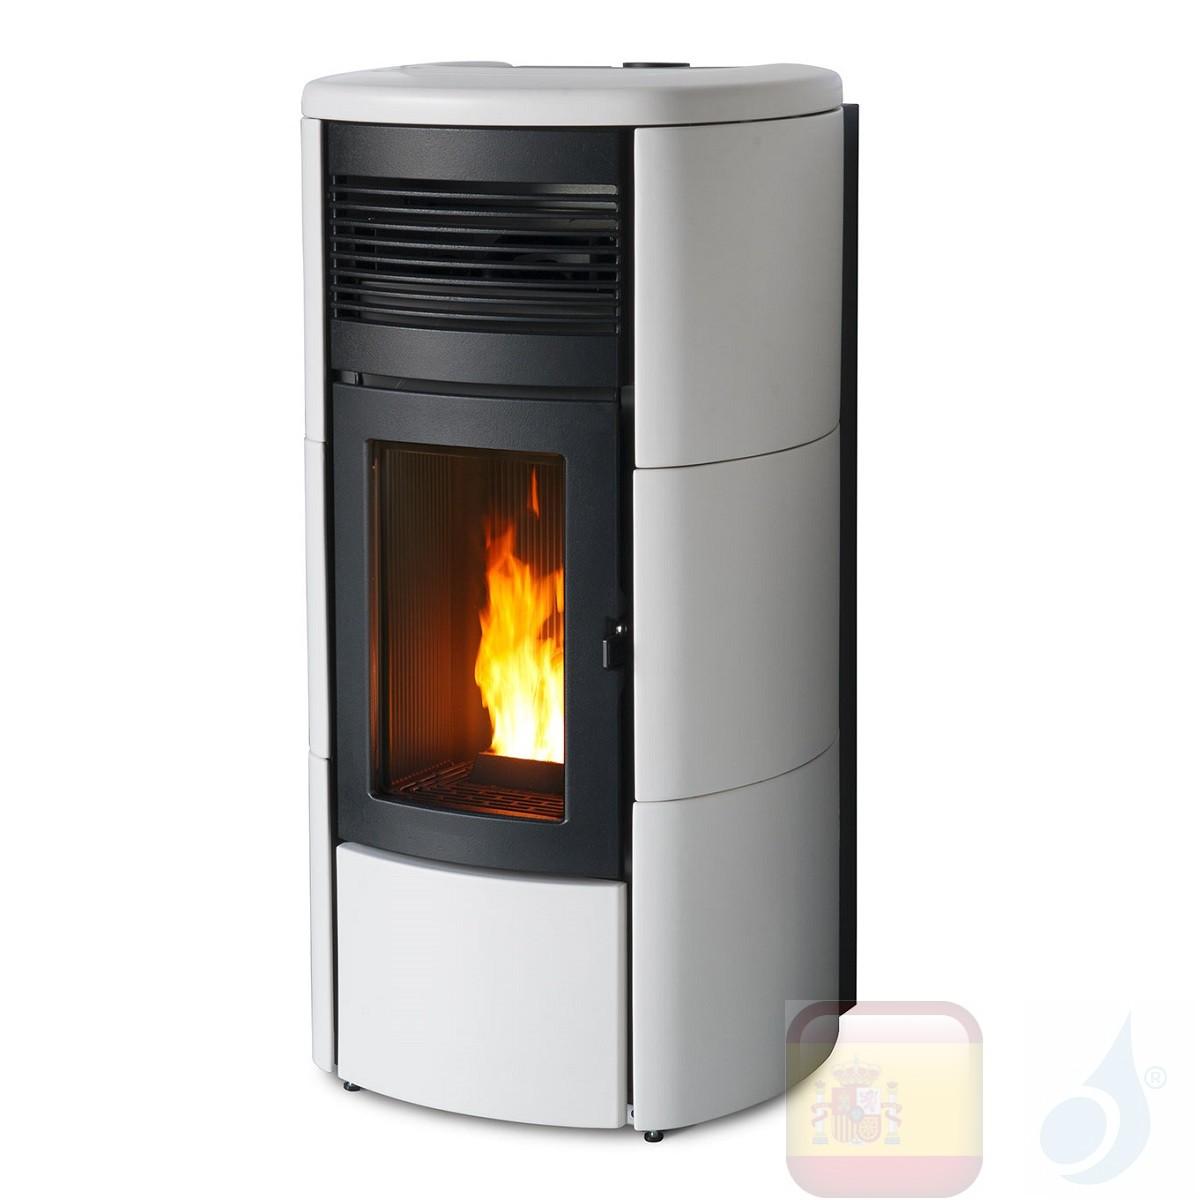 Estufa de pellets MCZ 13.9 kW Club Comfort Air 14 UP! M1 Blanco